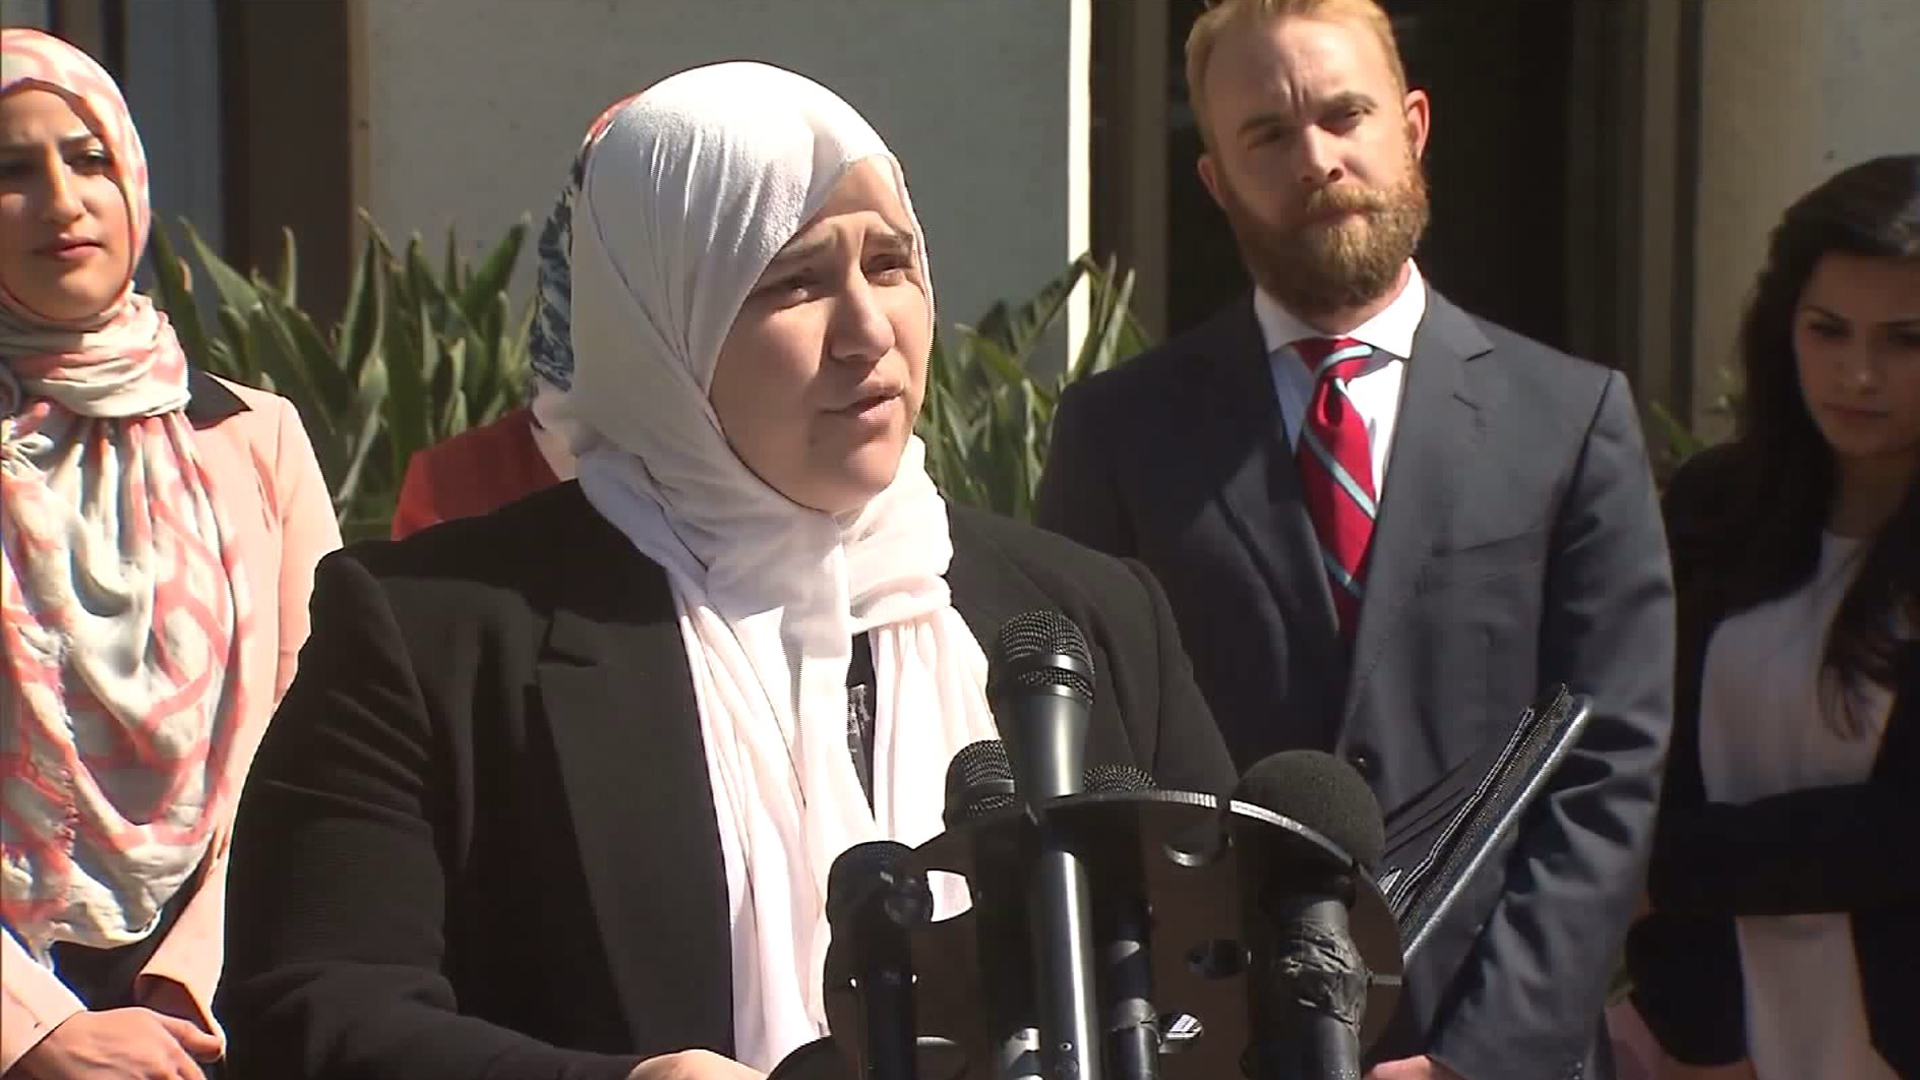 Soondus Ahmed, one of a group of women who filed a lawsuit against Urth Caffe after being ejected from the Laguna Beach location, speaks about the suit on May 3, 2016. (Credit: KTLA)